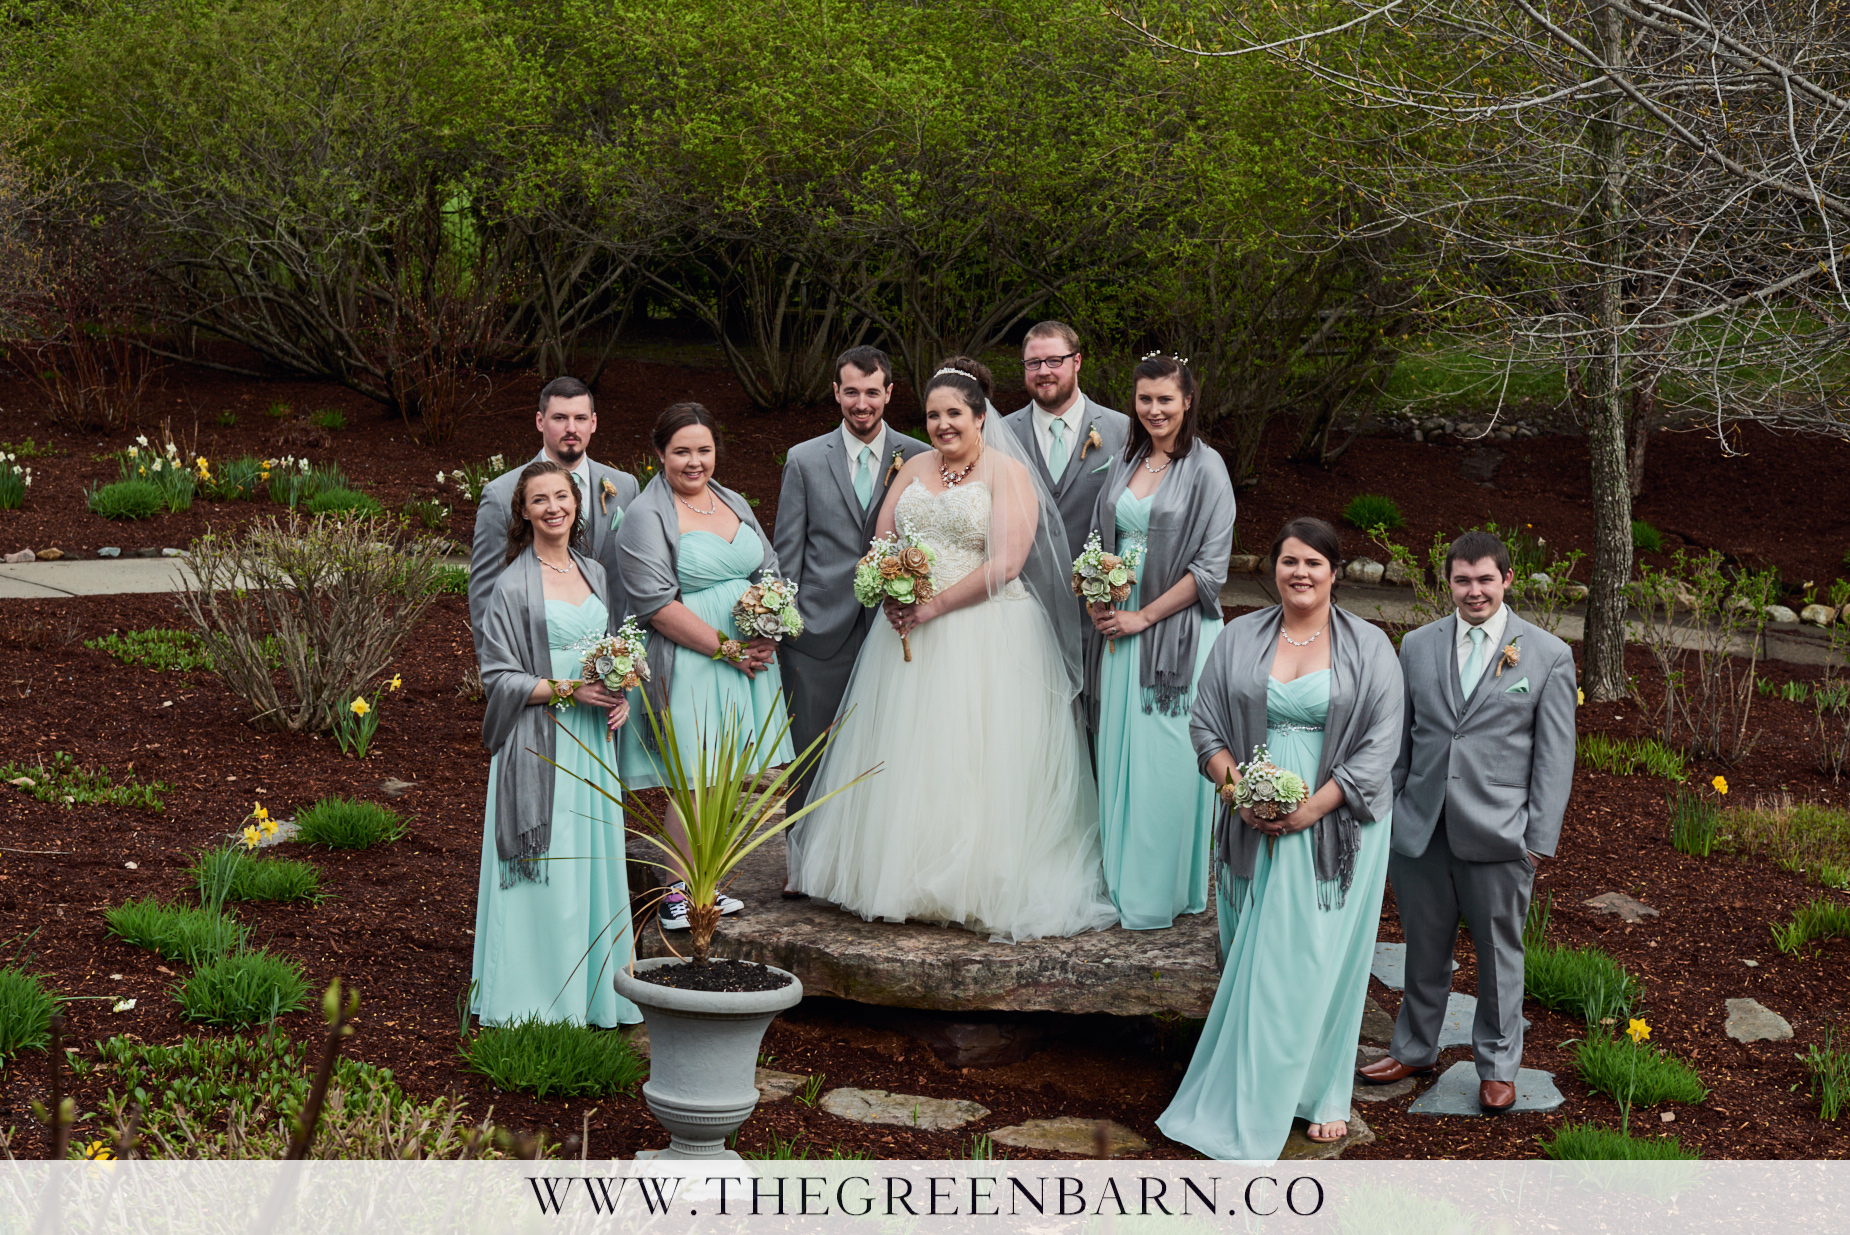 Wedding Party Photo with Grey and Sea Foam Green Wedding Color Palette for a May Wedding in Vermont